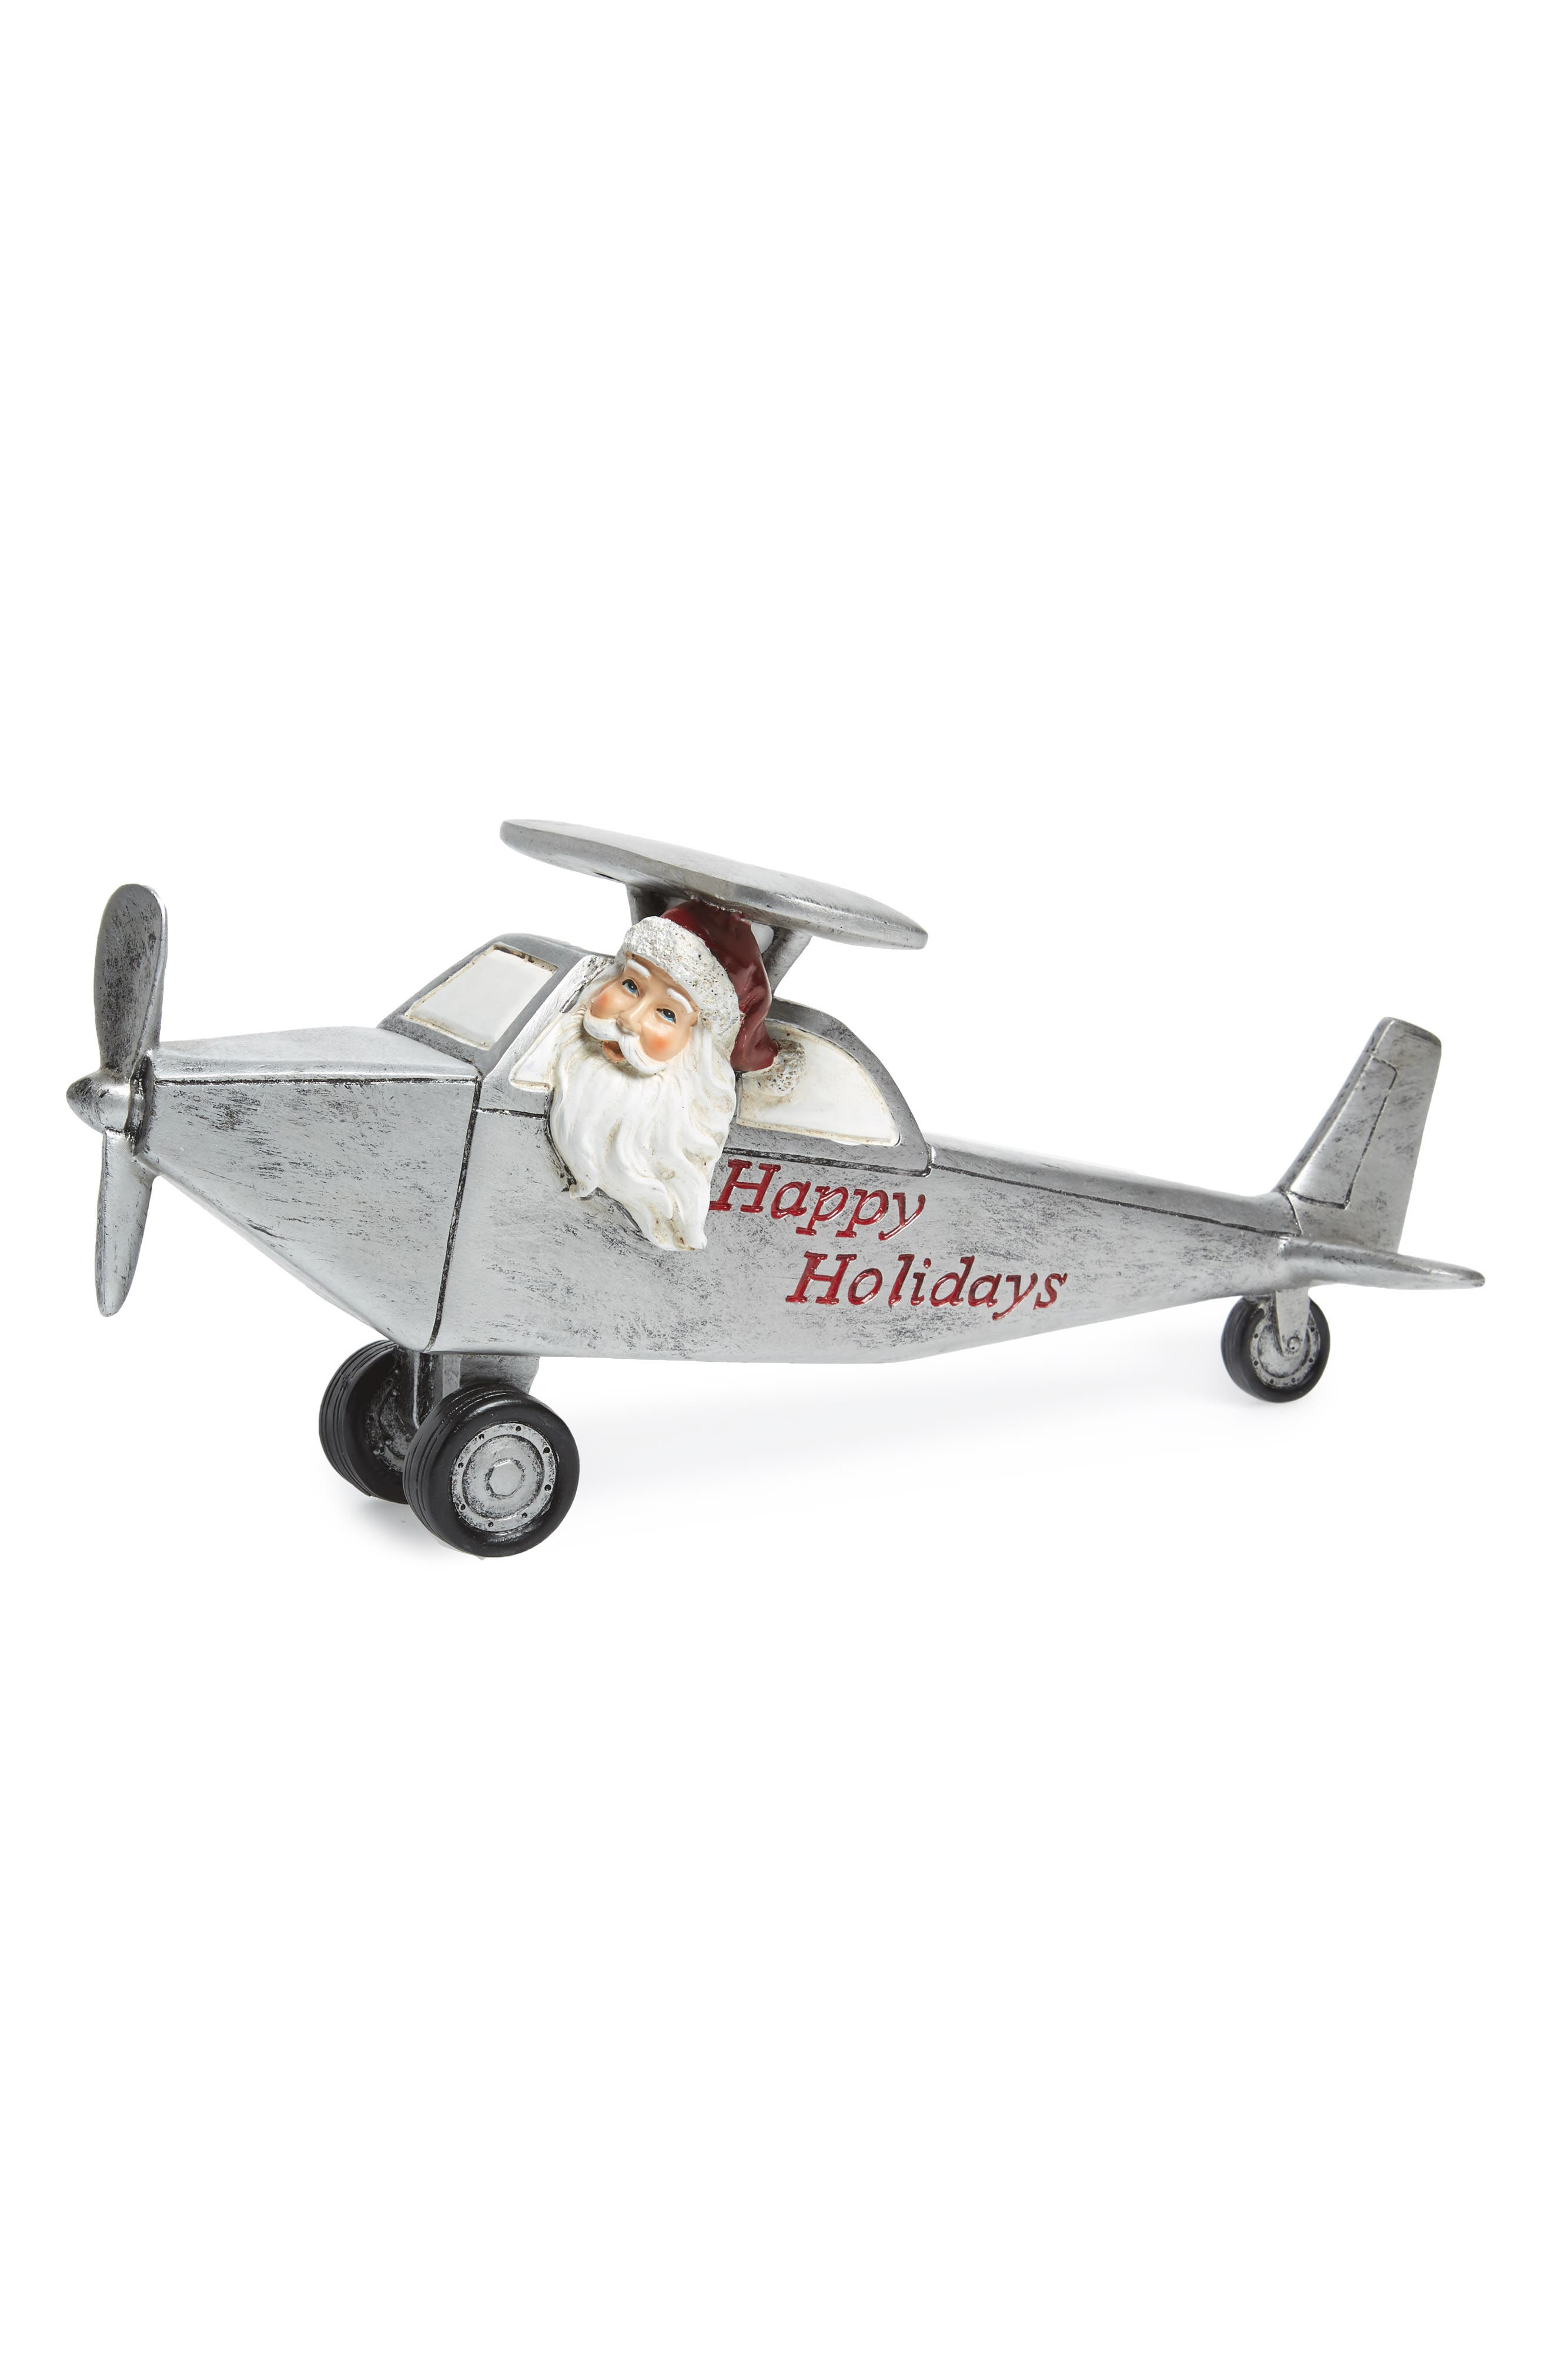 ALLSTATE Santa Airplane Ornament